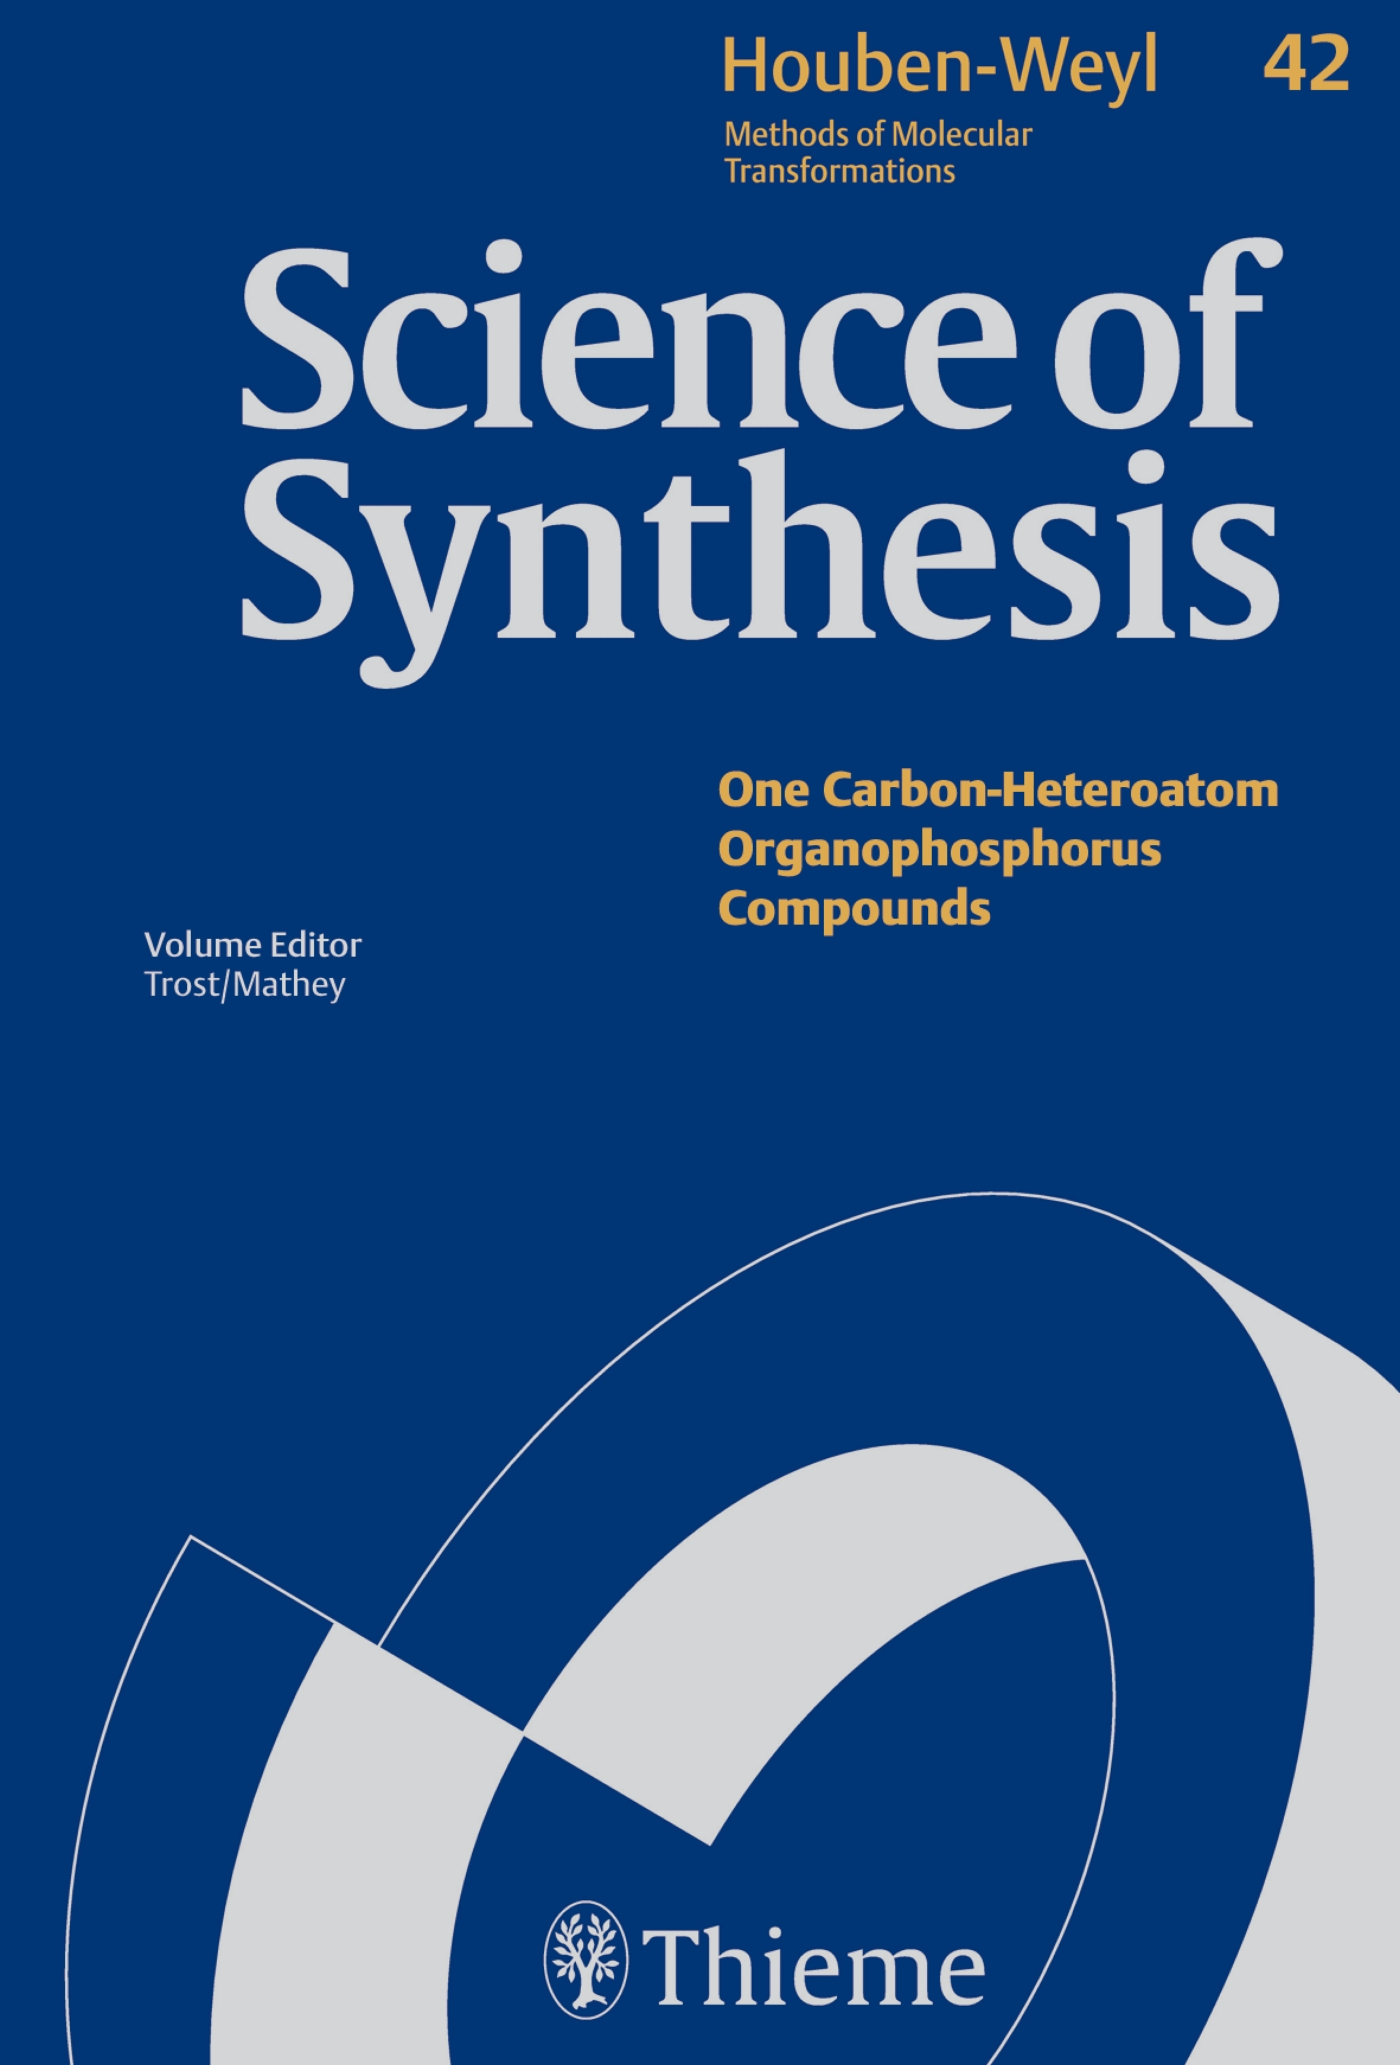 Science of Synthesis: Houben-Weyl Methods of Molecular Transformations  Vol. 42